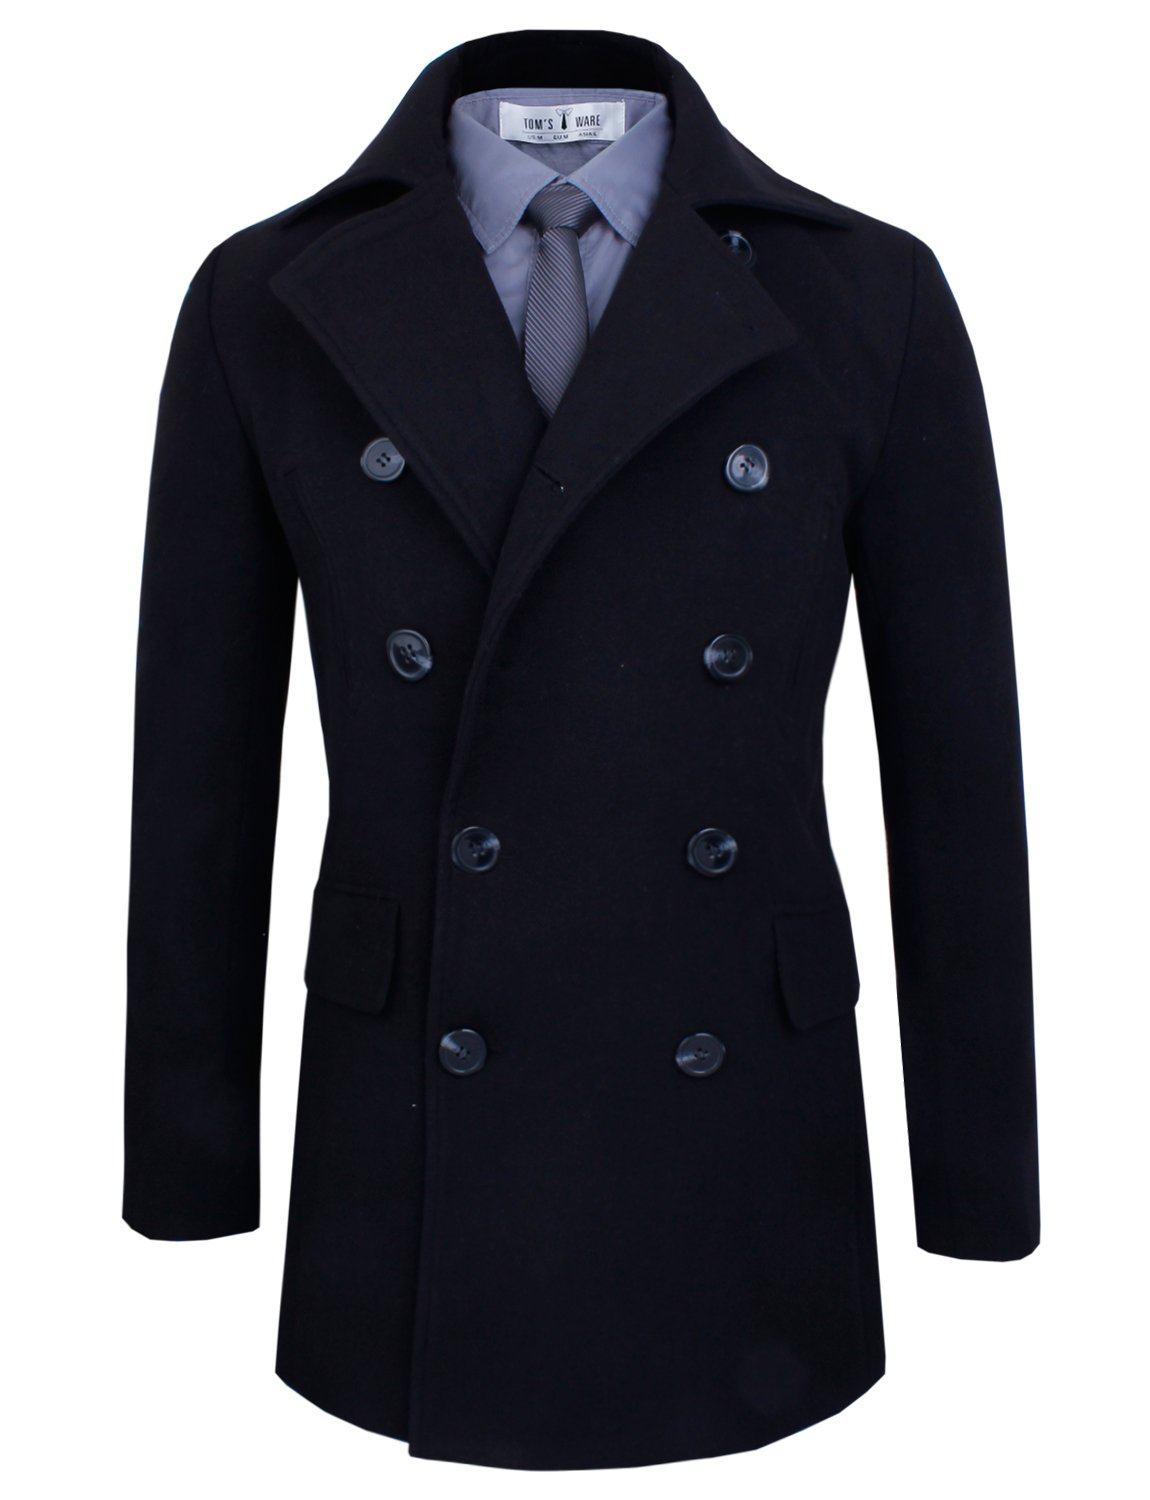 Tom's Ware Men's Stylish Wool Blend Pea Coat TWCC05LQ-D076J-BLACK-US L